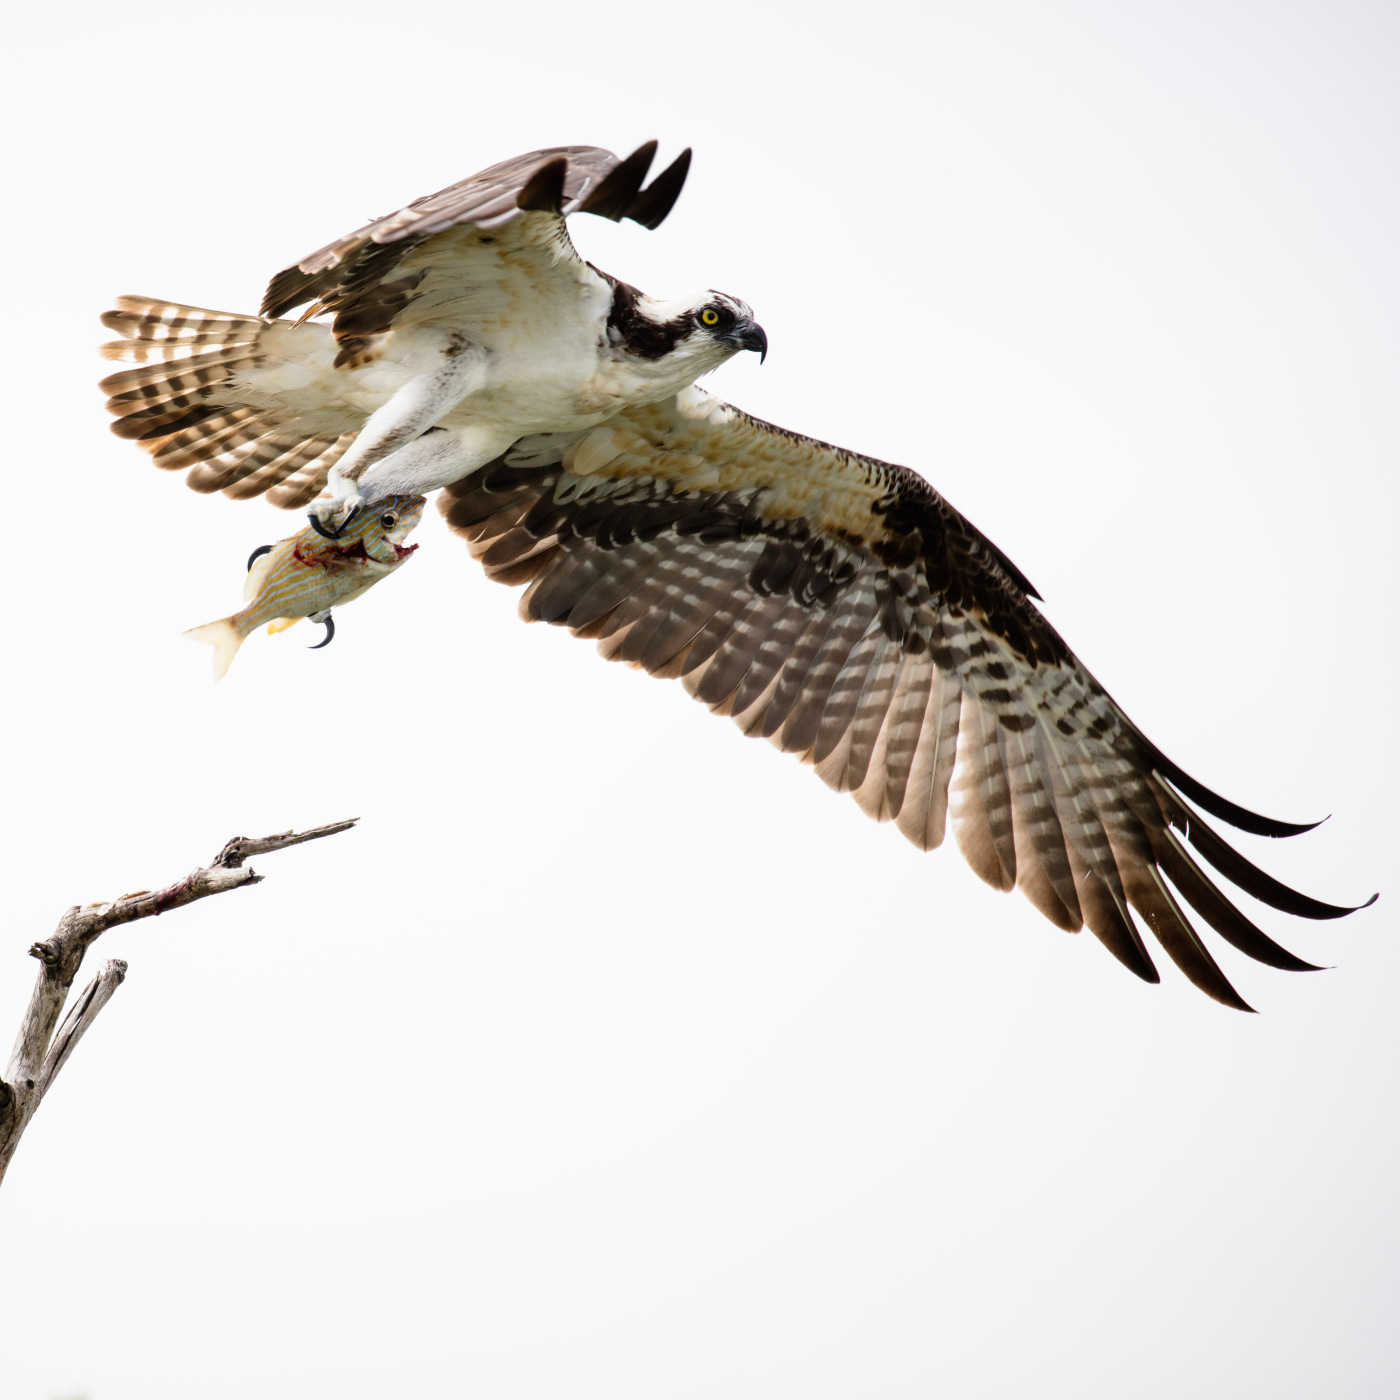 fishhawk photo by  Barry Scully